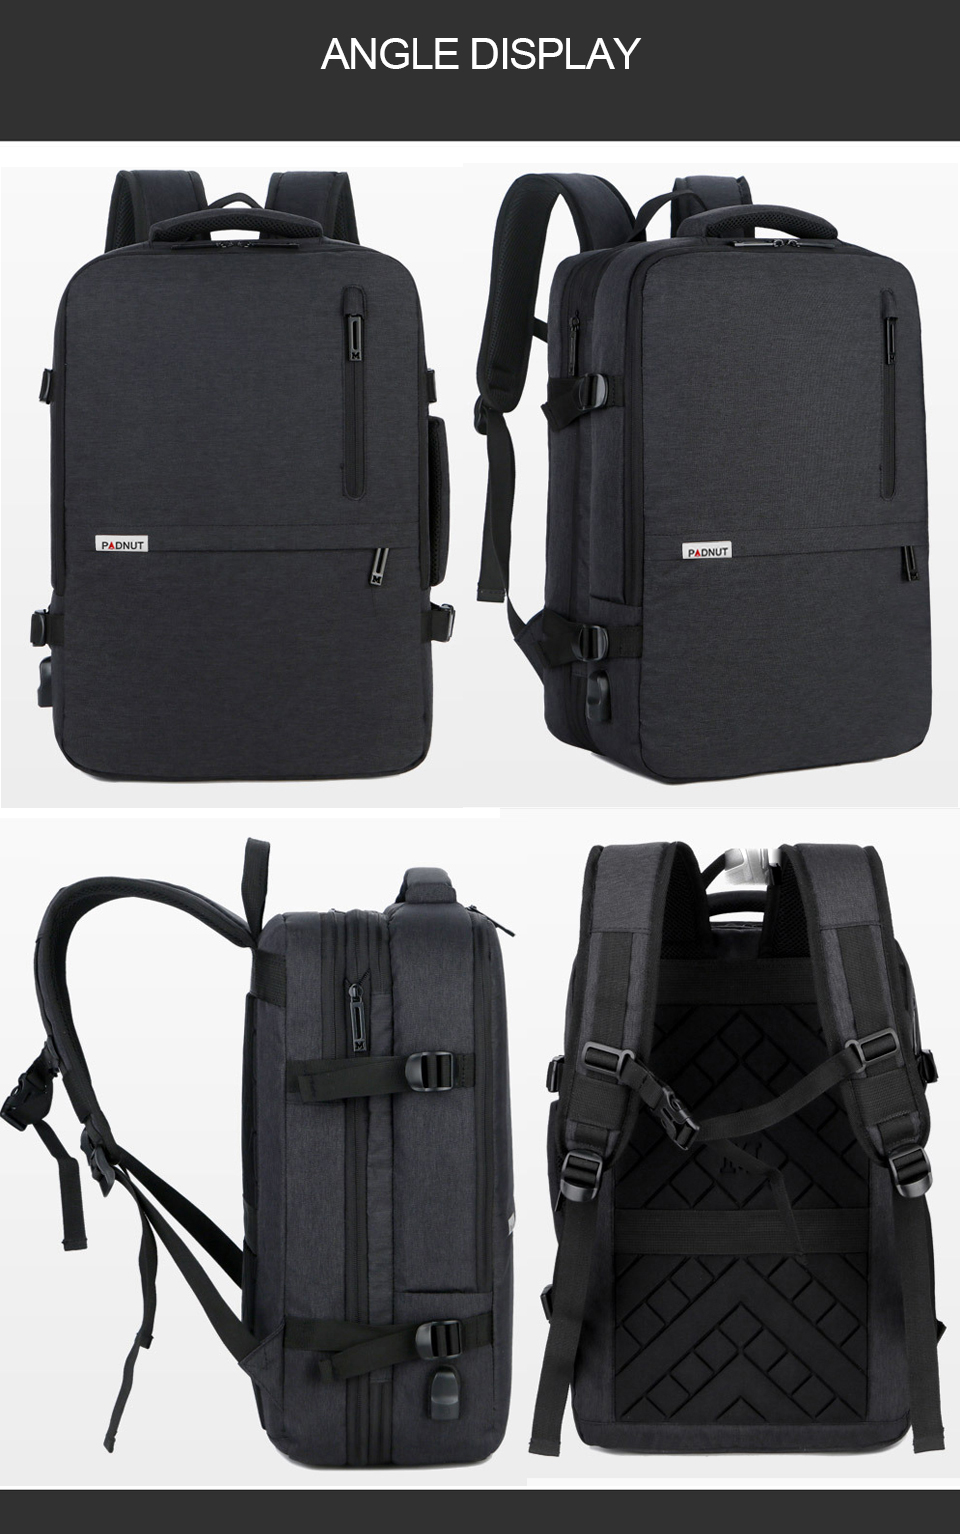 17''-Laptop-Backpack-Travel-Bag-Women-Men-Waterproof-75L-Large-Capacity-Bagpack-Anti-theft-Male-Female-Outdoor-15.6-Back-Packing_09_03